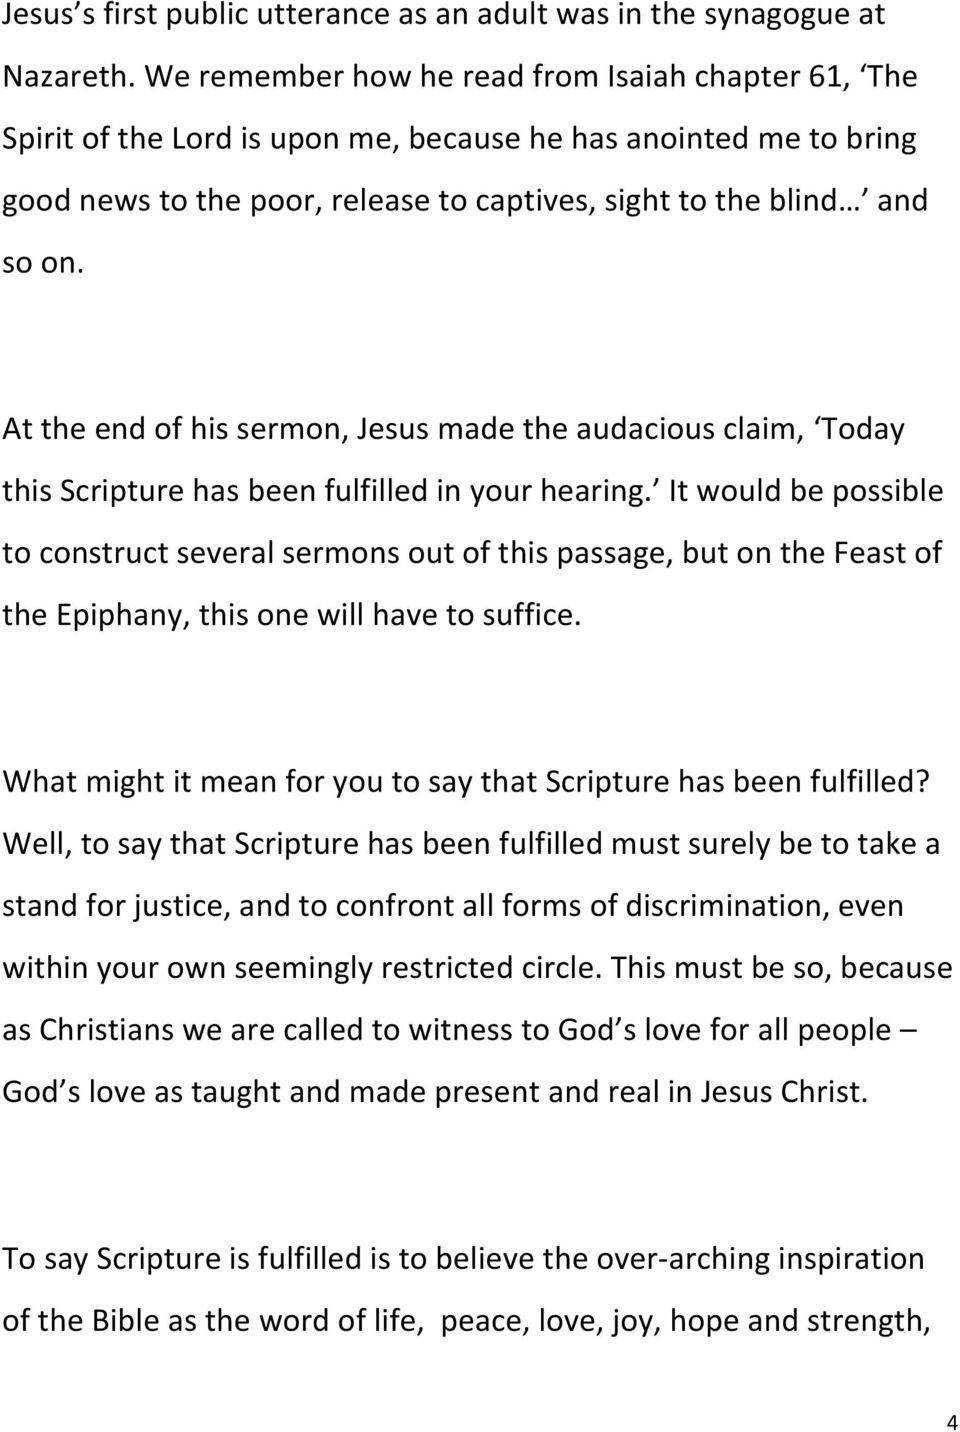 At the end of his sermon, Jesus made the audacious claim, Today this Scripture has been fulfilled in your hearing.